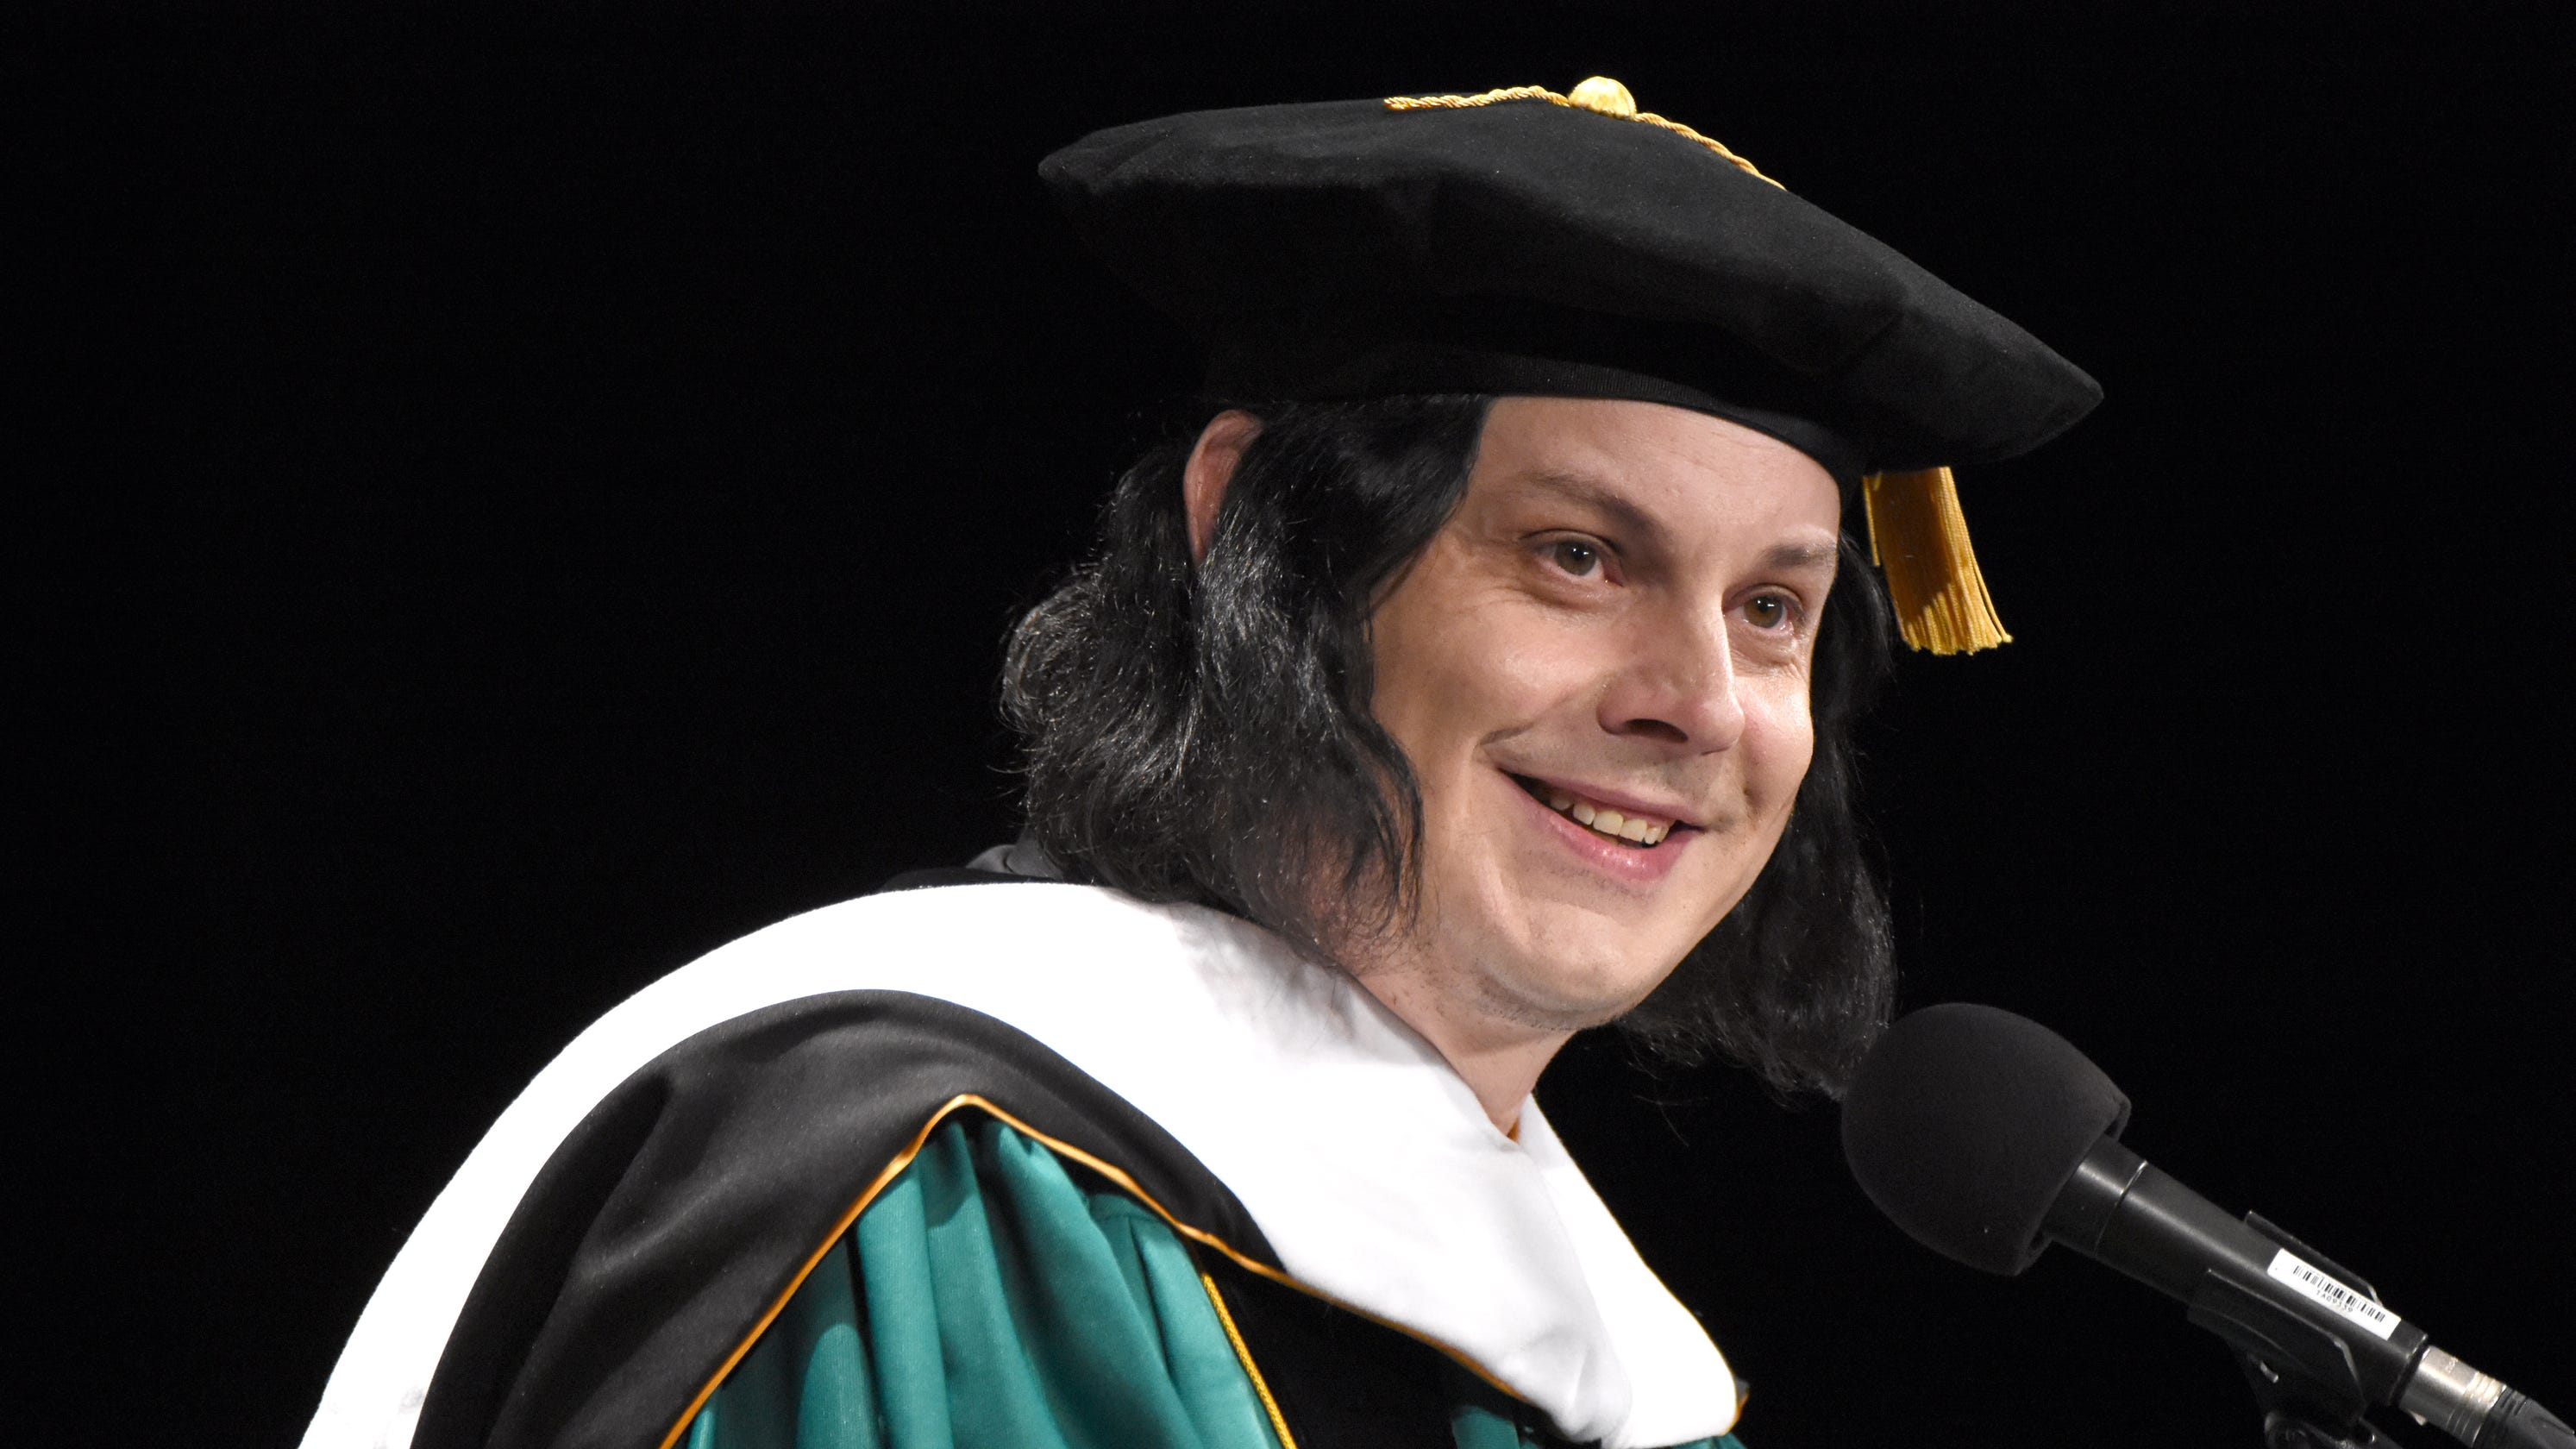 Rocker Jack White receives honorary doctorate from Wayne State